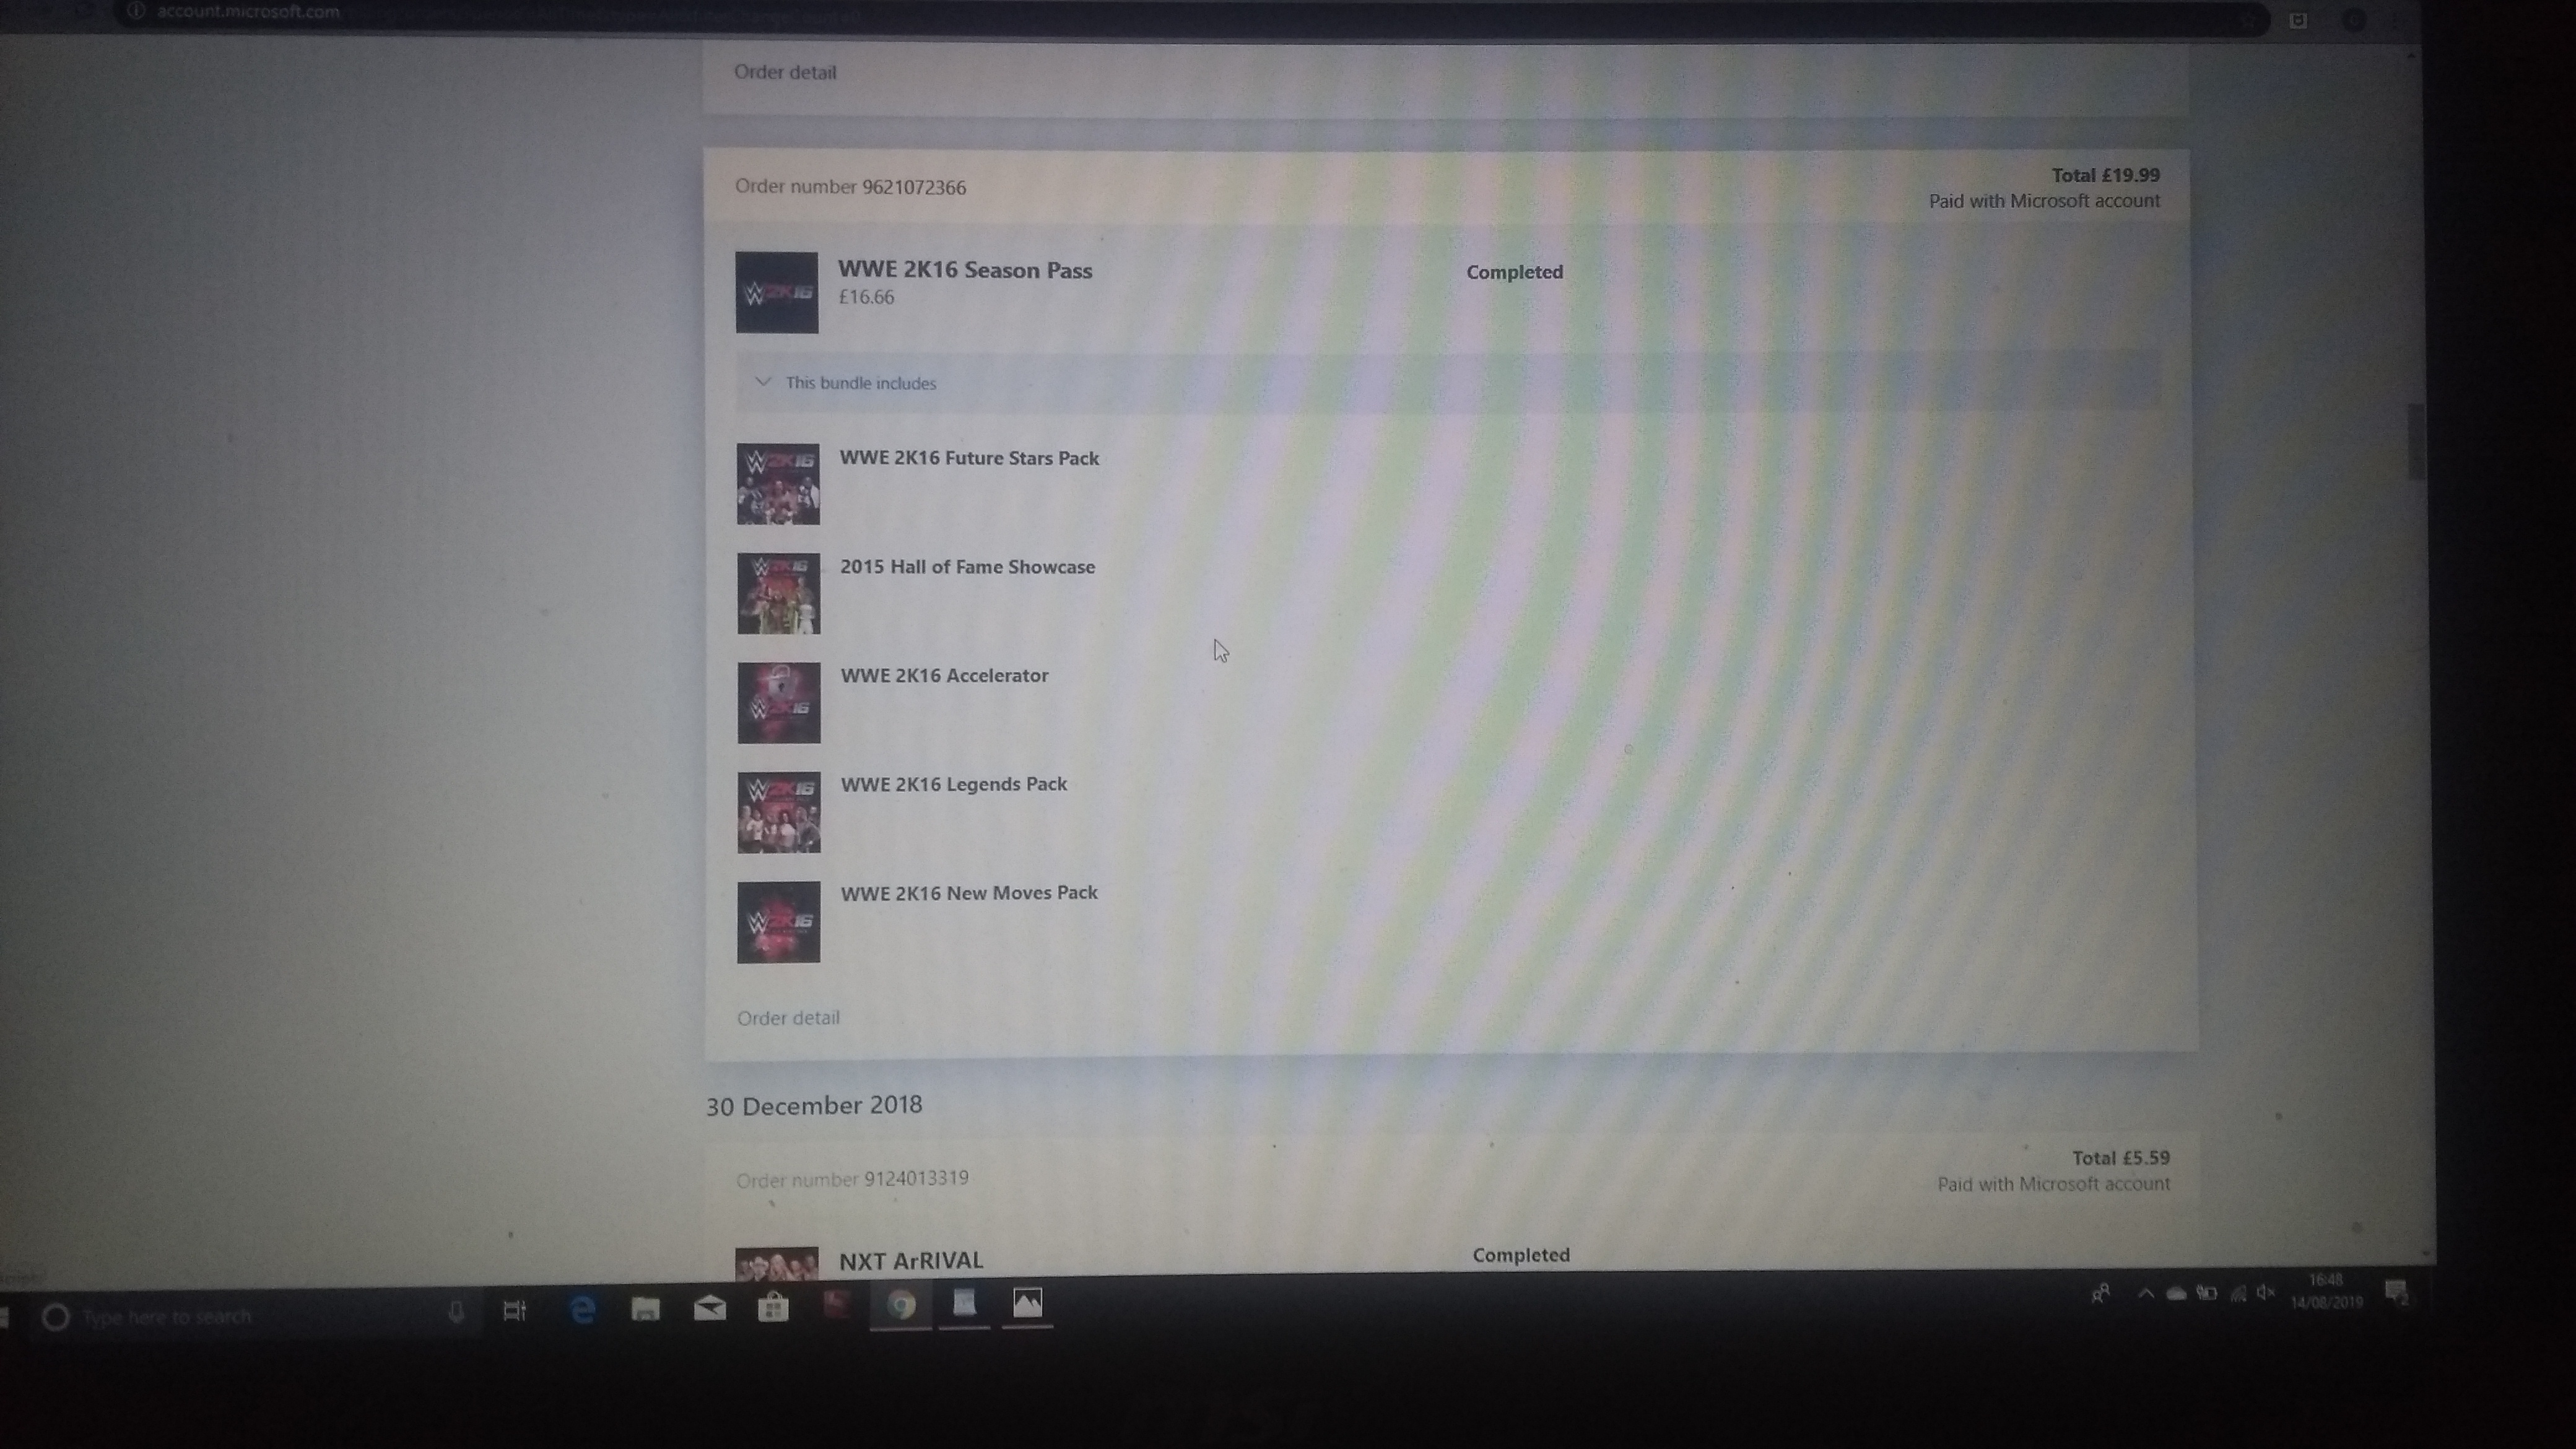 WWE 2K16 and WWE 2K17 doesn't show up on ready to install despite purchase complete on... [IMG]